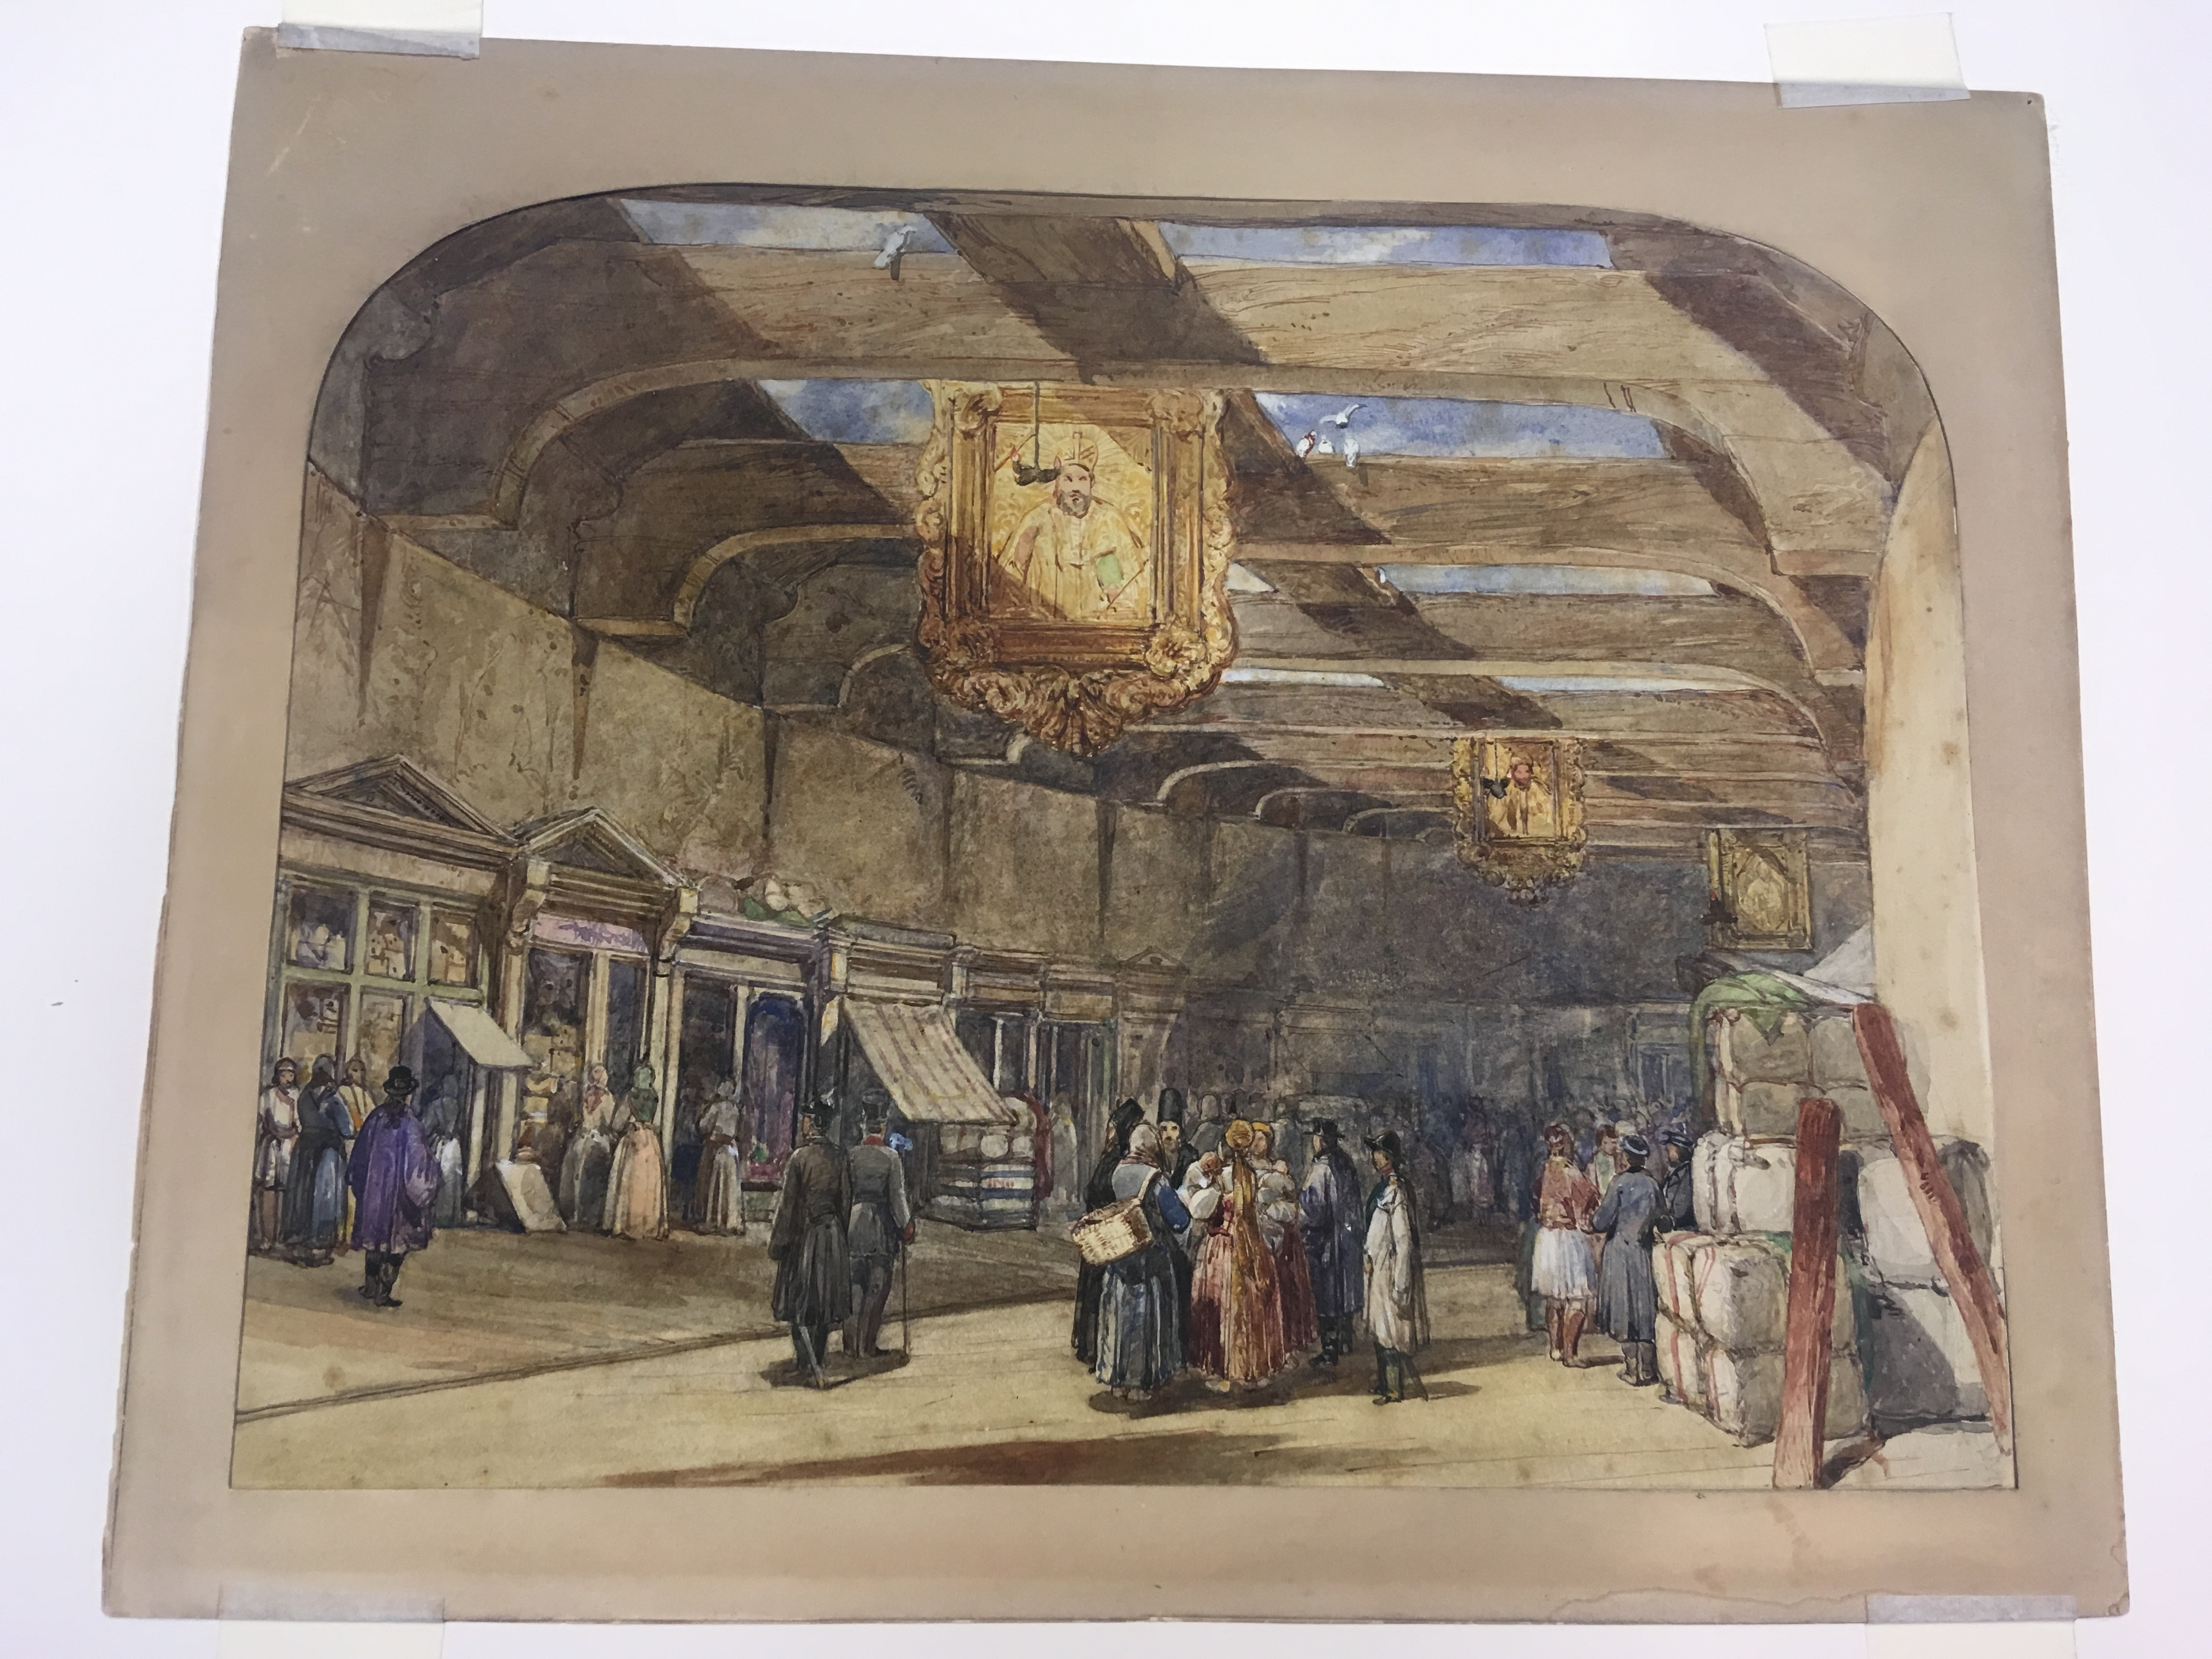 Lot 146 - FOLLOWER OF WILLIAM SIMPSON (1823-1899) A GREEK COVERED MARKET with a collector's stamp on